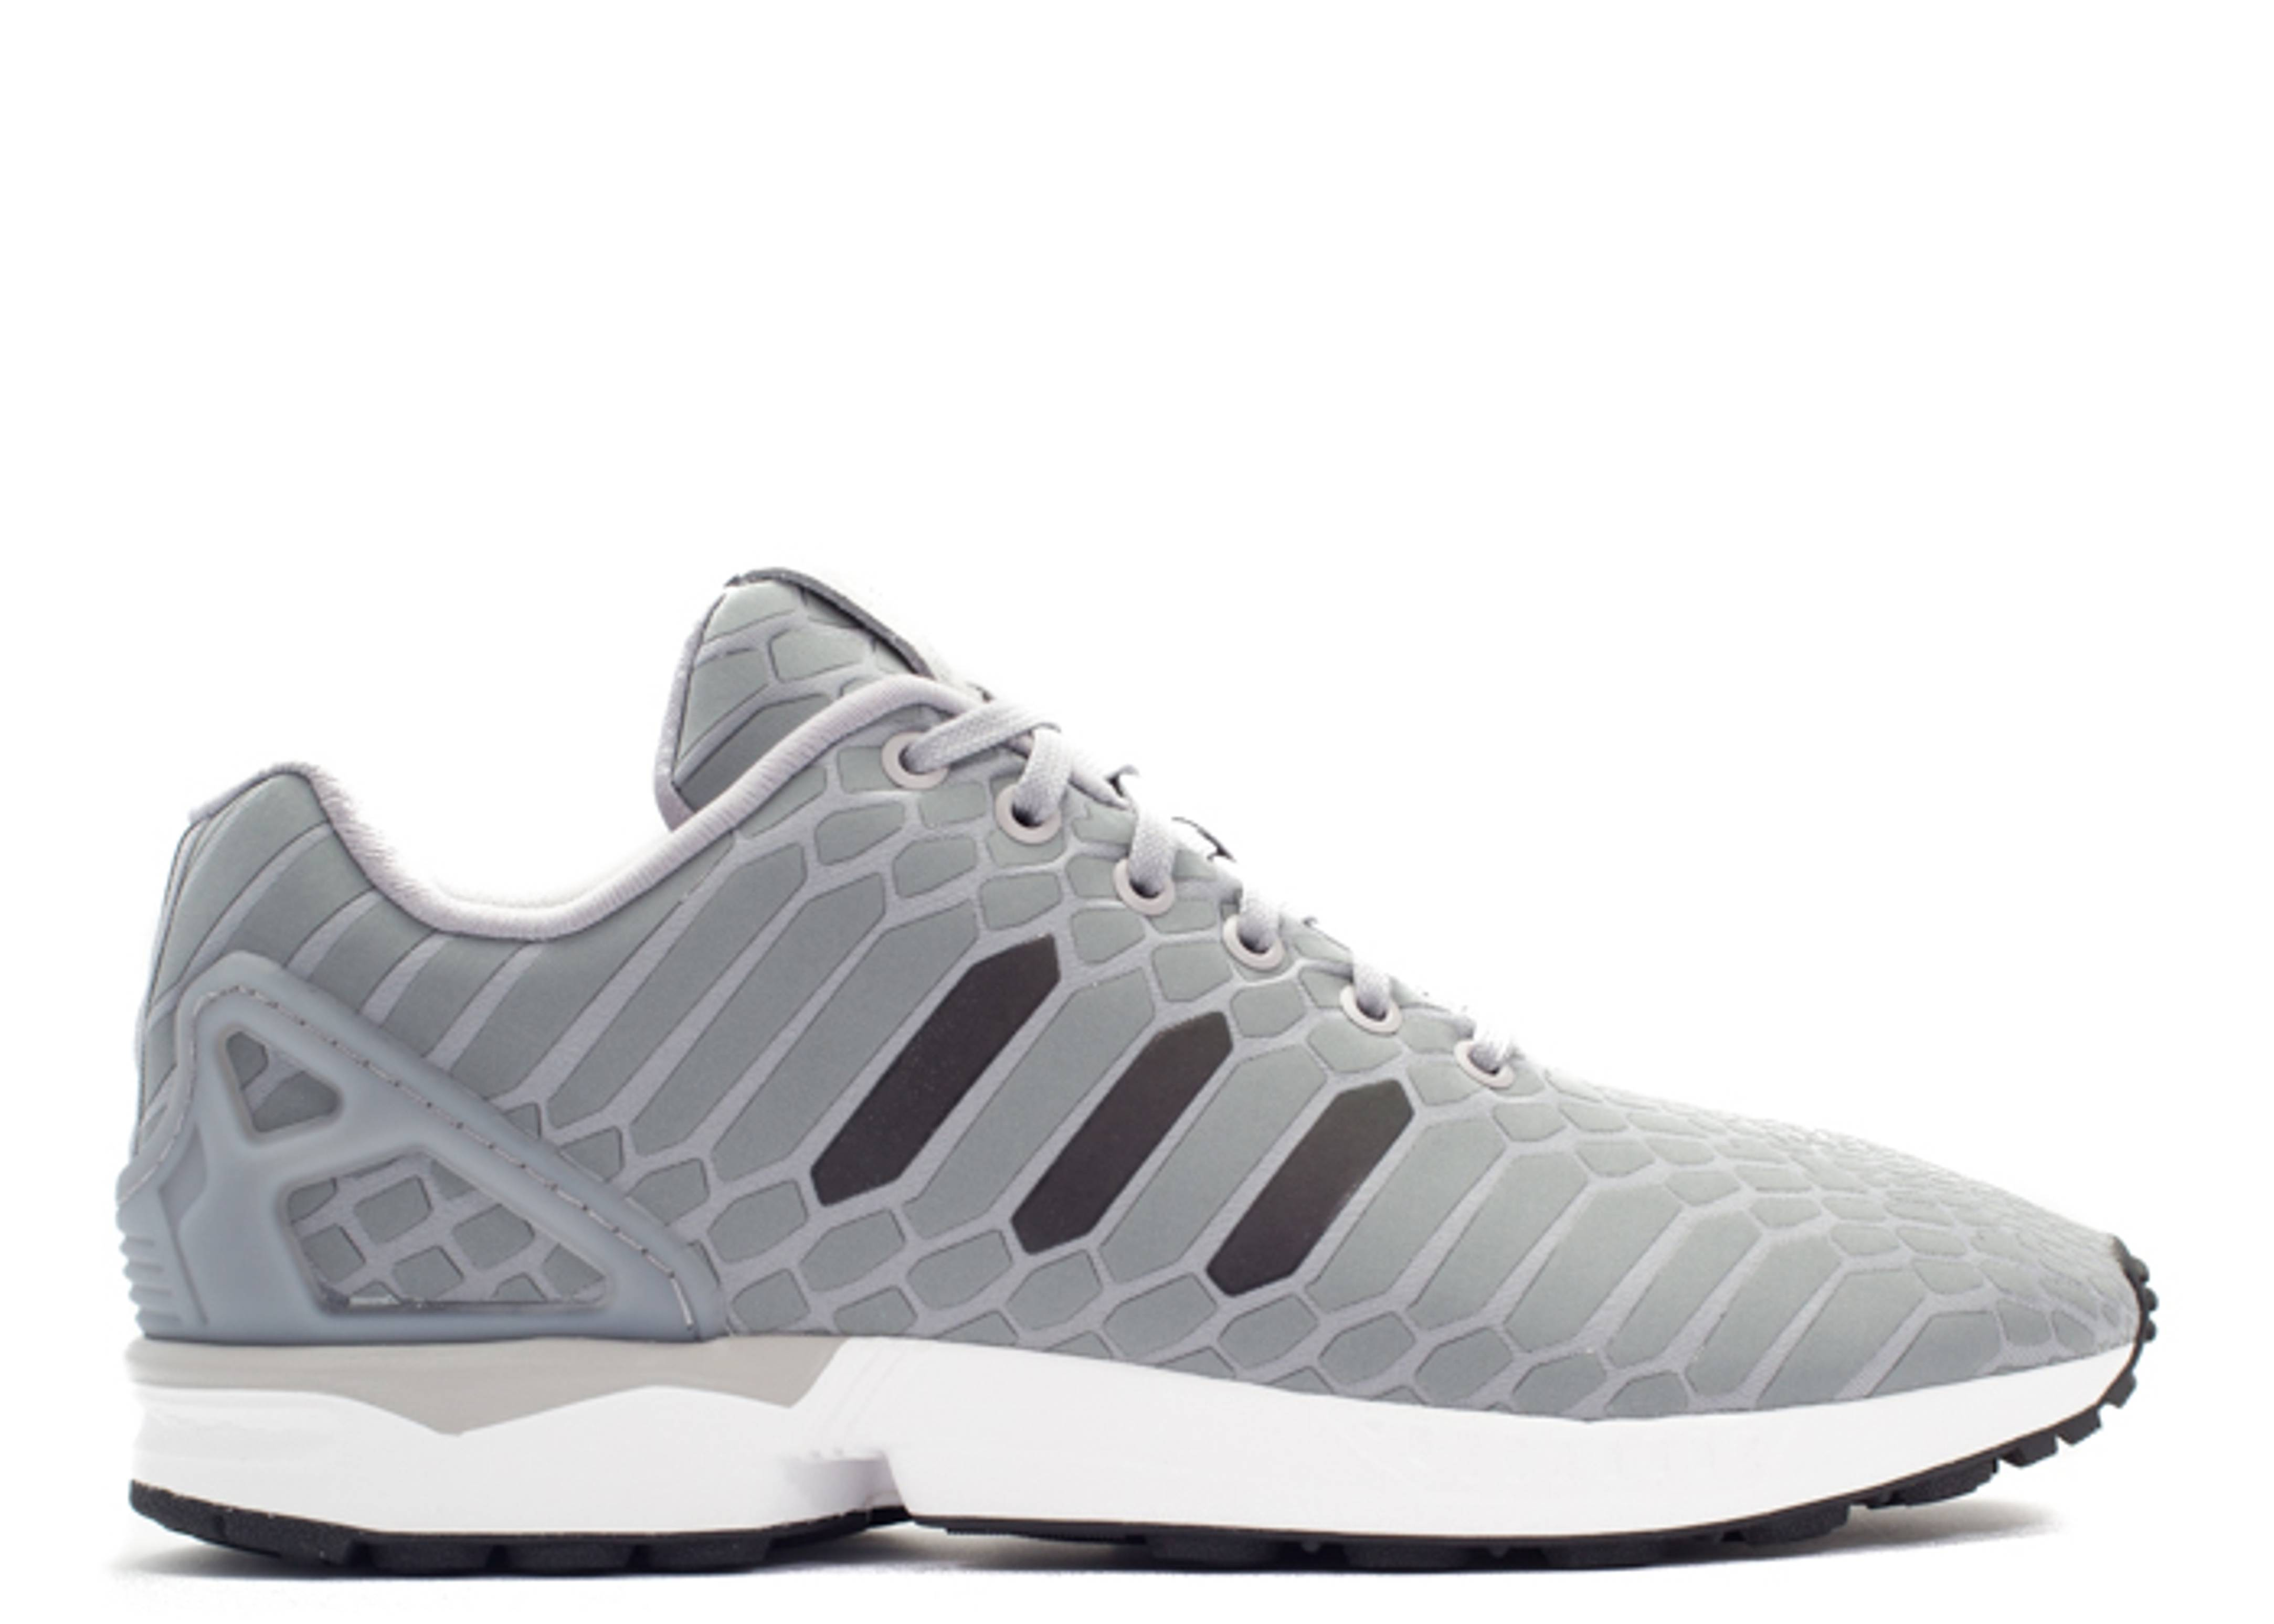 new arrival 7dee3 ebd2c adidas. zx flux